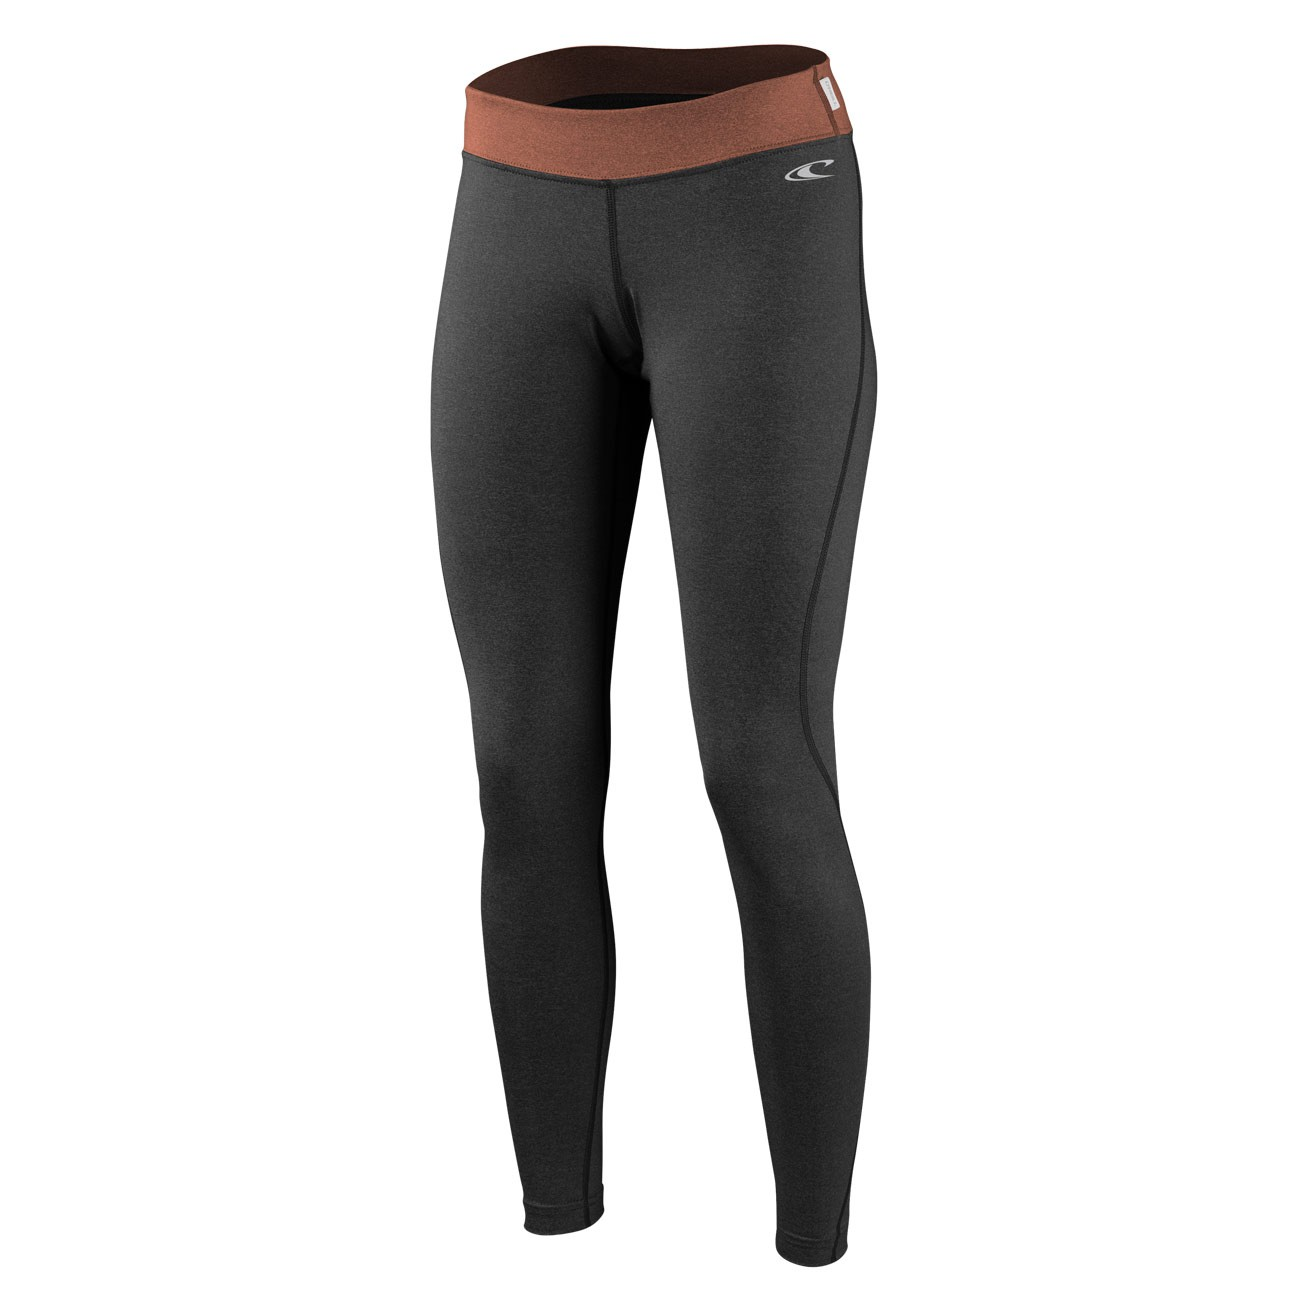 Lycra O'Neill Wms O'zone Comp Tights graphite/lt.grape/graphite